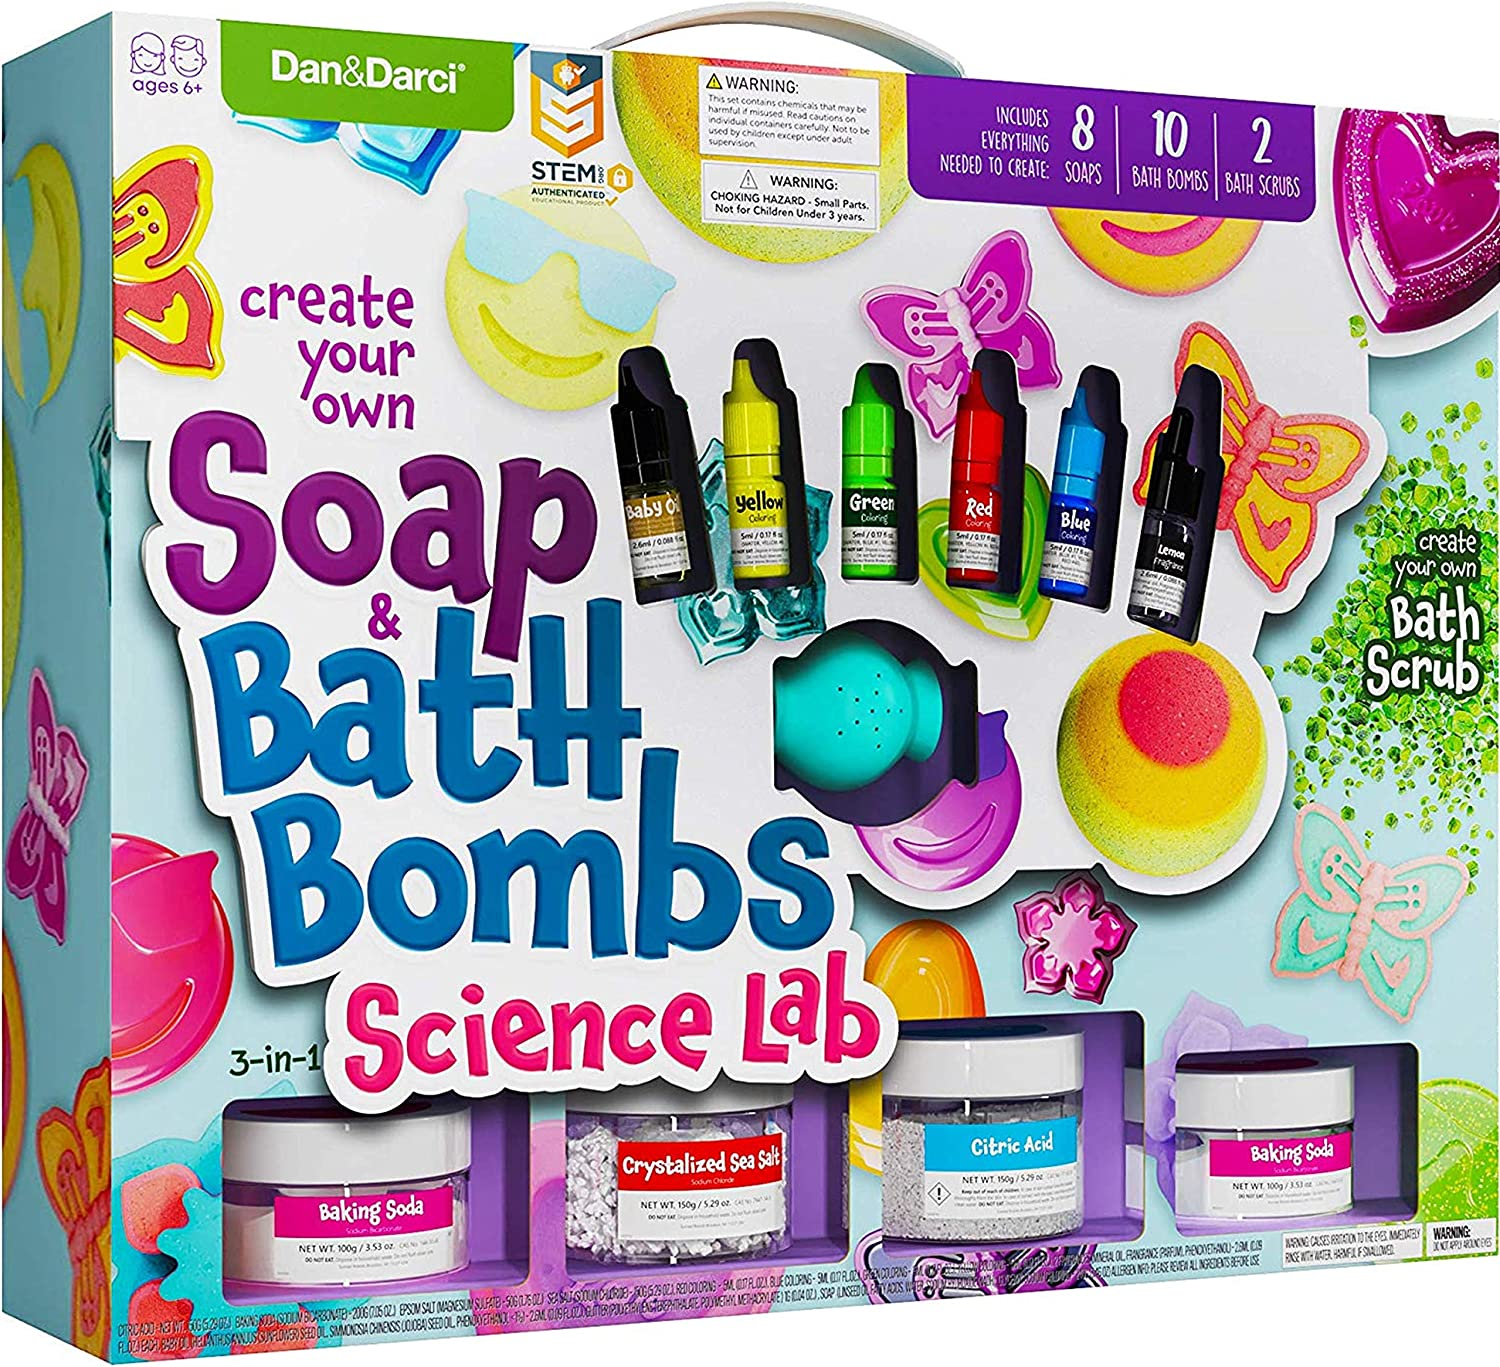 Soap & Bath Bomb Making Kit for Kids - 3-in-1 Spa Science Kits For Kids : Complete Soap Making Kit & Make Your Own Bath Bombs, Soap & Bath Scrubs : Kids Science Kit For Kids - Gift for Girls and Boys: Toys & Games